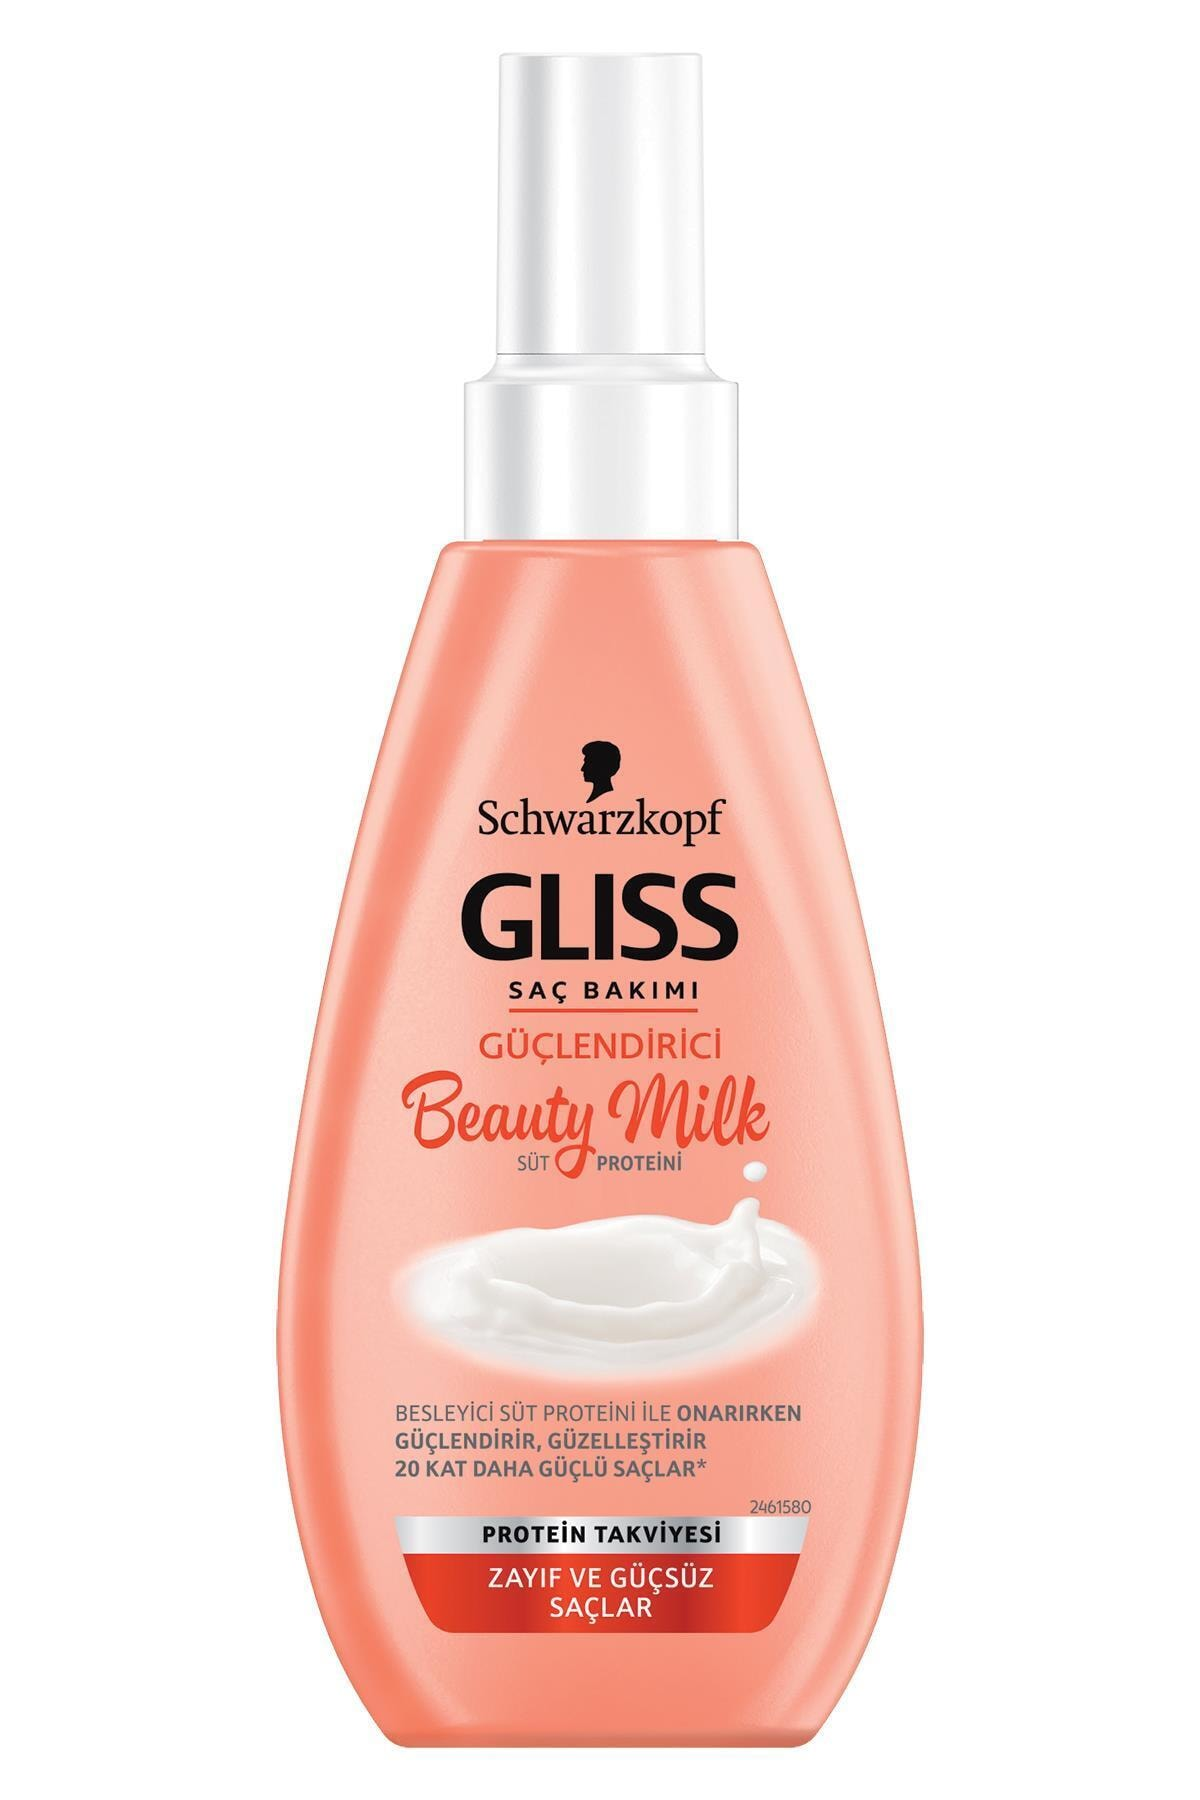 Gliss Schwarzkopf Gliss Beauty Milk-Güçlendirici Bakim Sütü 150 Ml 2